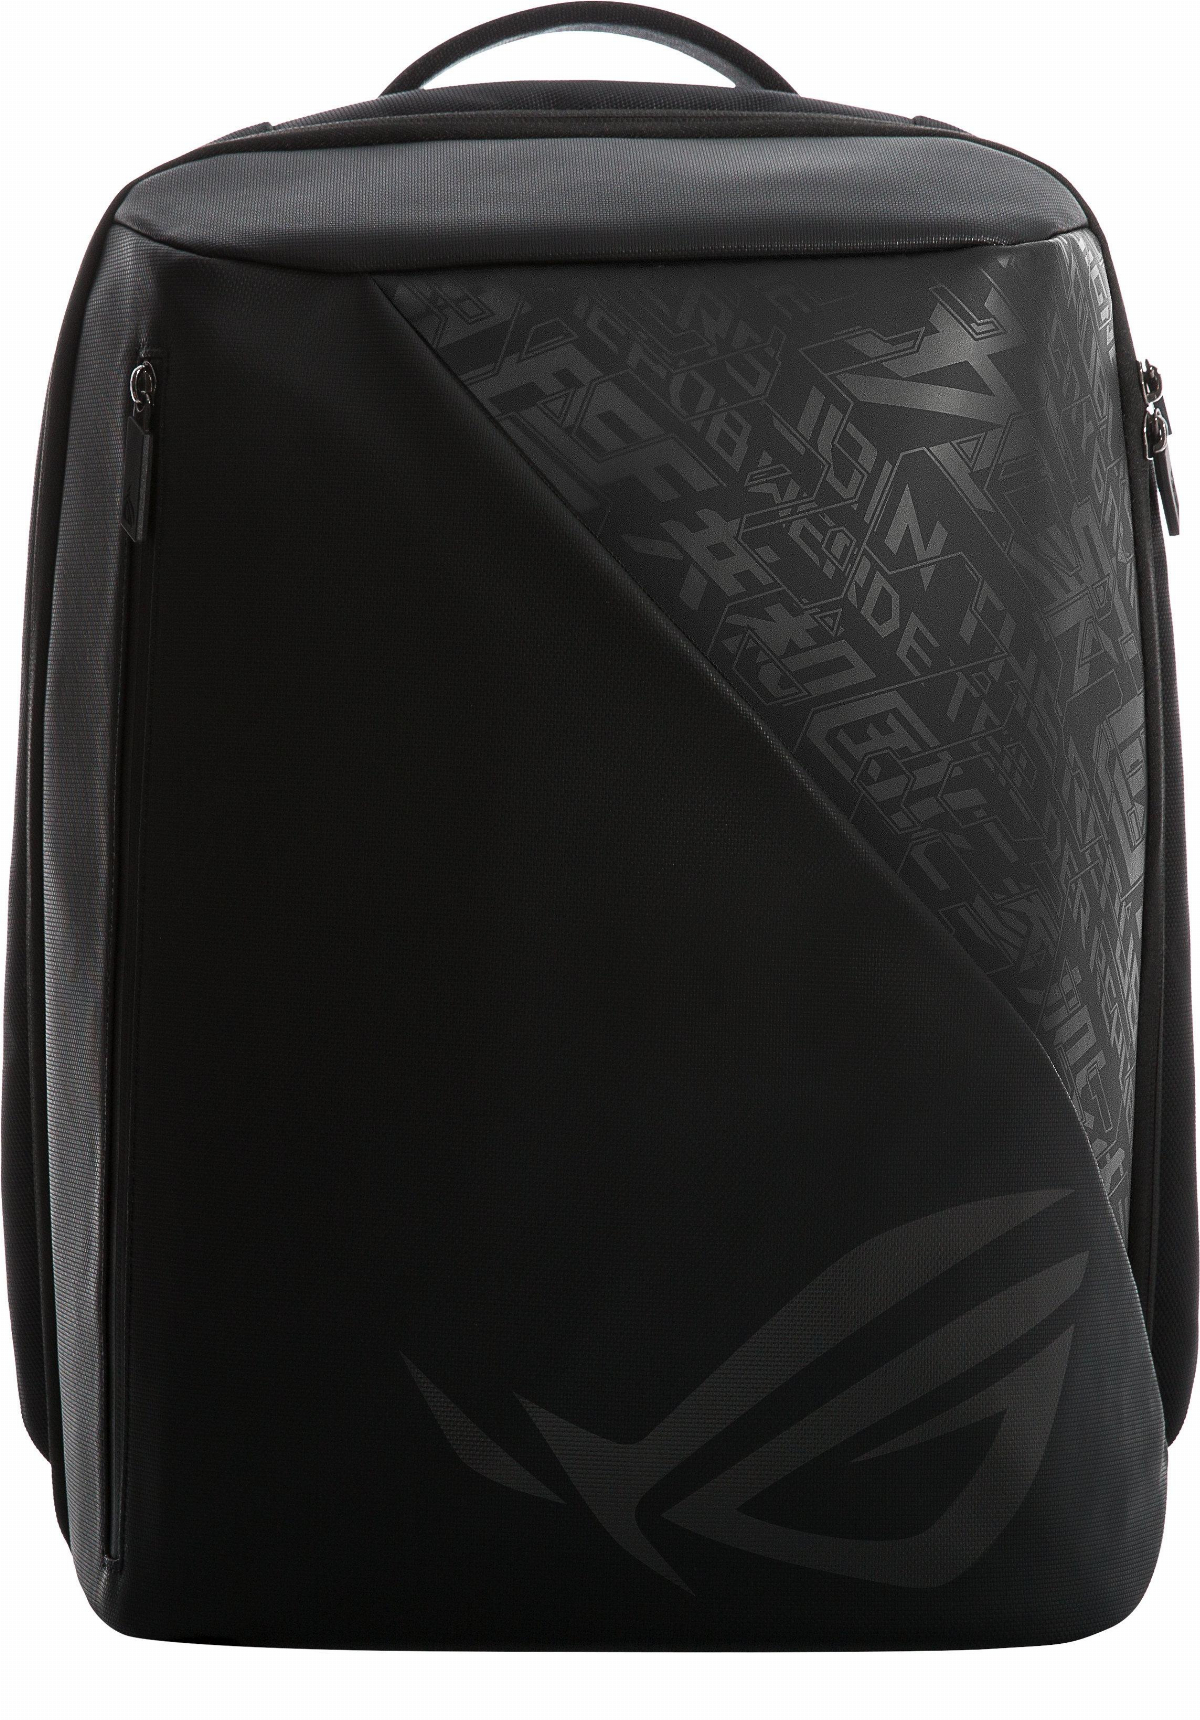 Раница за лаптоп ASUS ROG Ranger BP2500 Gaming backpack